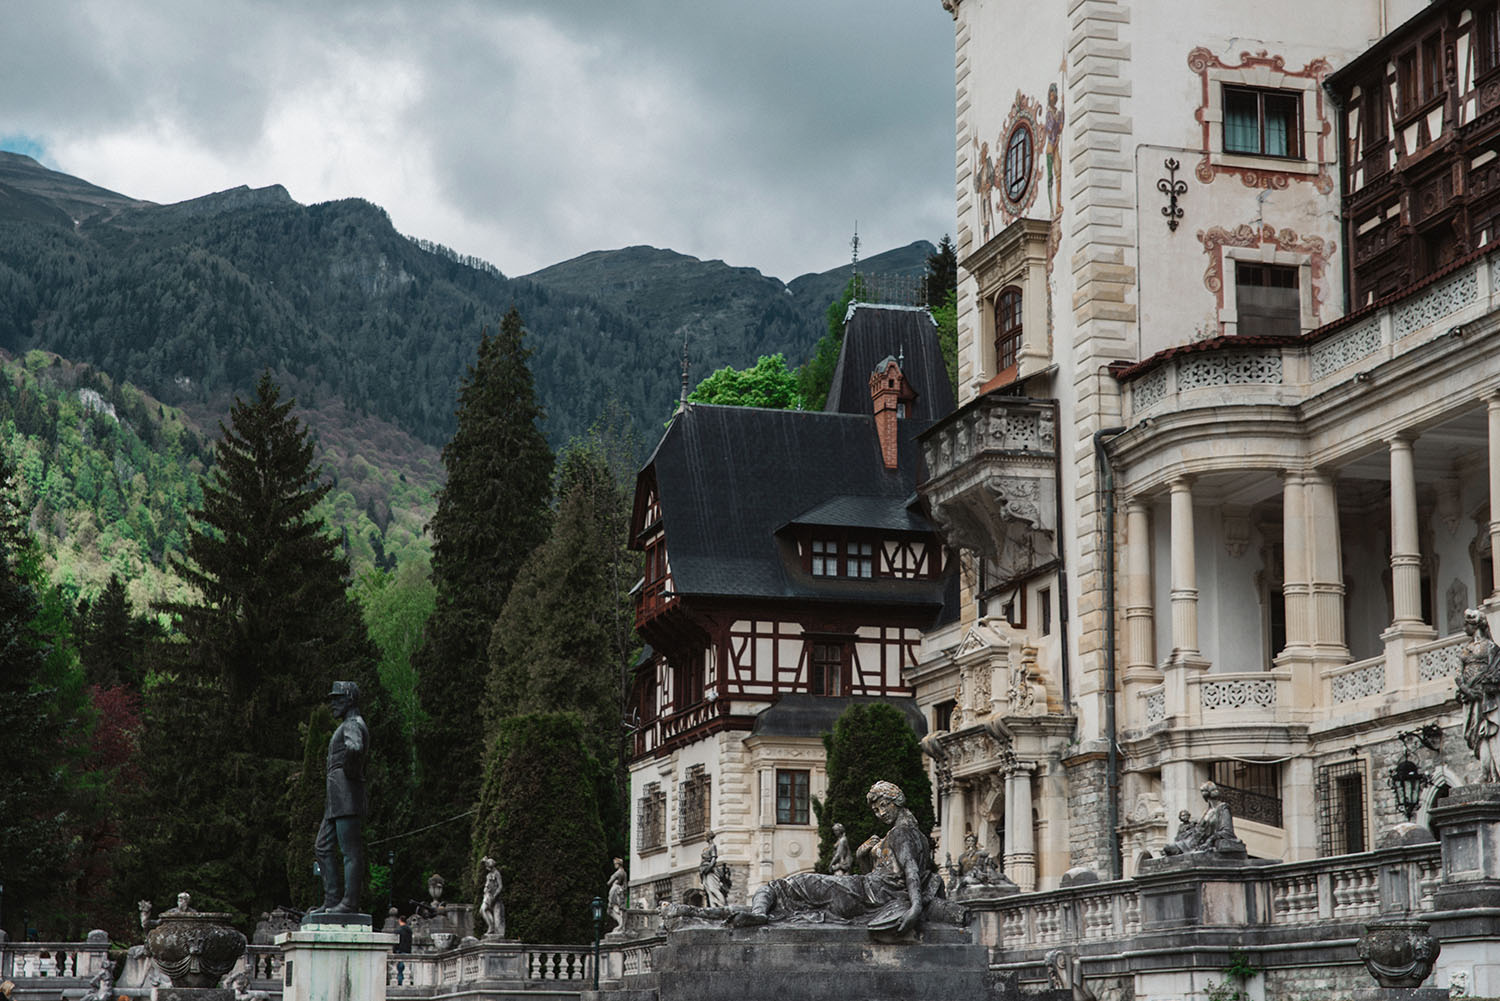 One of Europe's most stunning castles: Peleş Castle in Romania